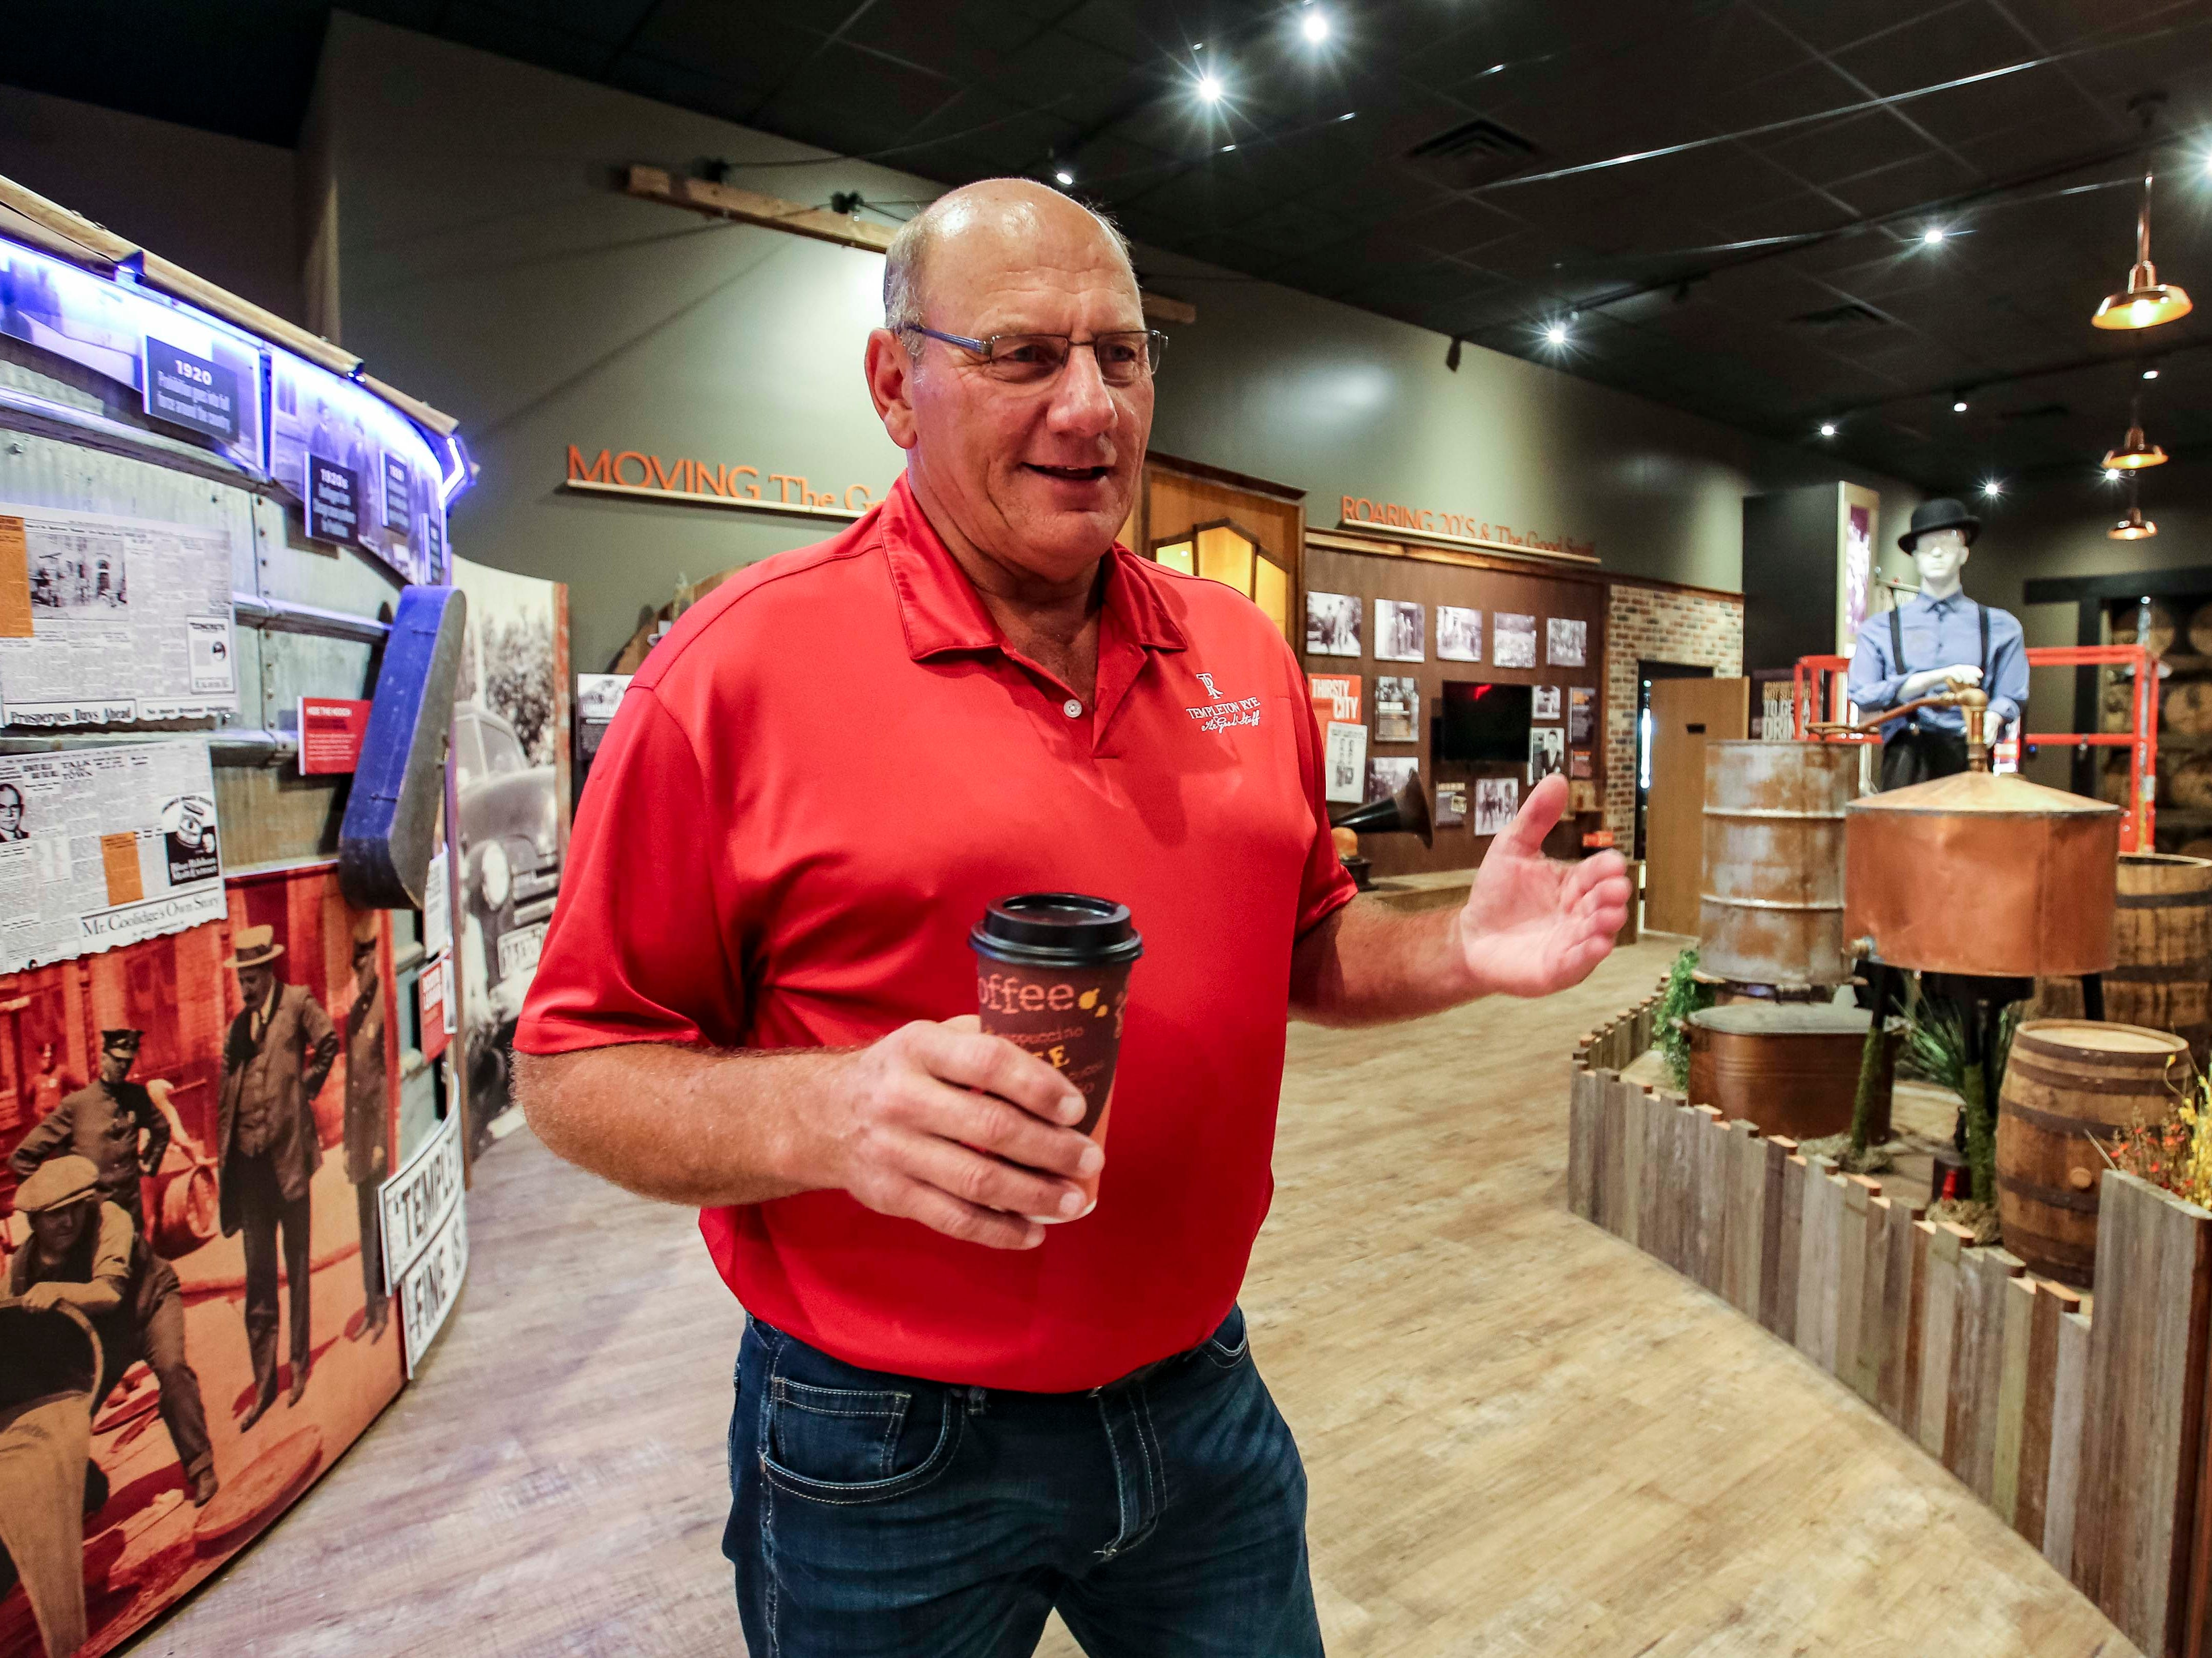 Co-founder Keith Kerkhoff at Templeton Rye's $35 million distillery in Templeton, Iowa, shown here Monday, Aug. 6, 2018, featuring a museum and visitor's center.